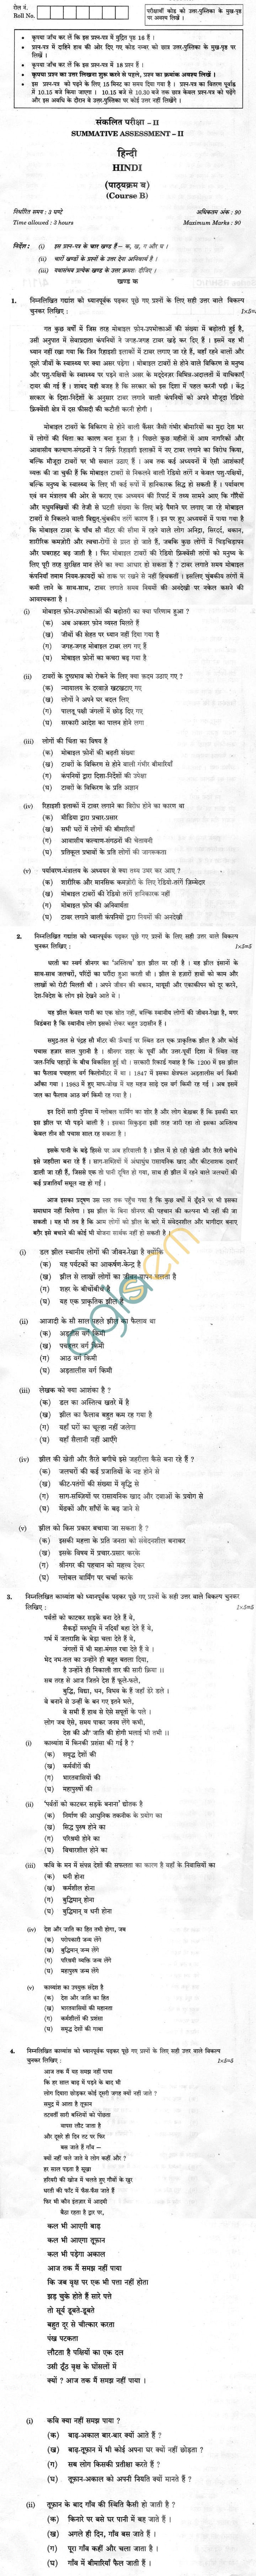 CBSE Compartment Exam 2013 Class X Question Paper -Hindi (Course B)